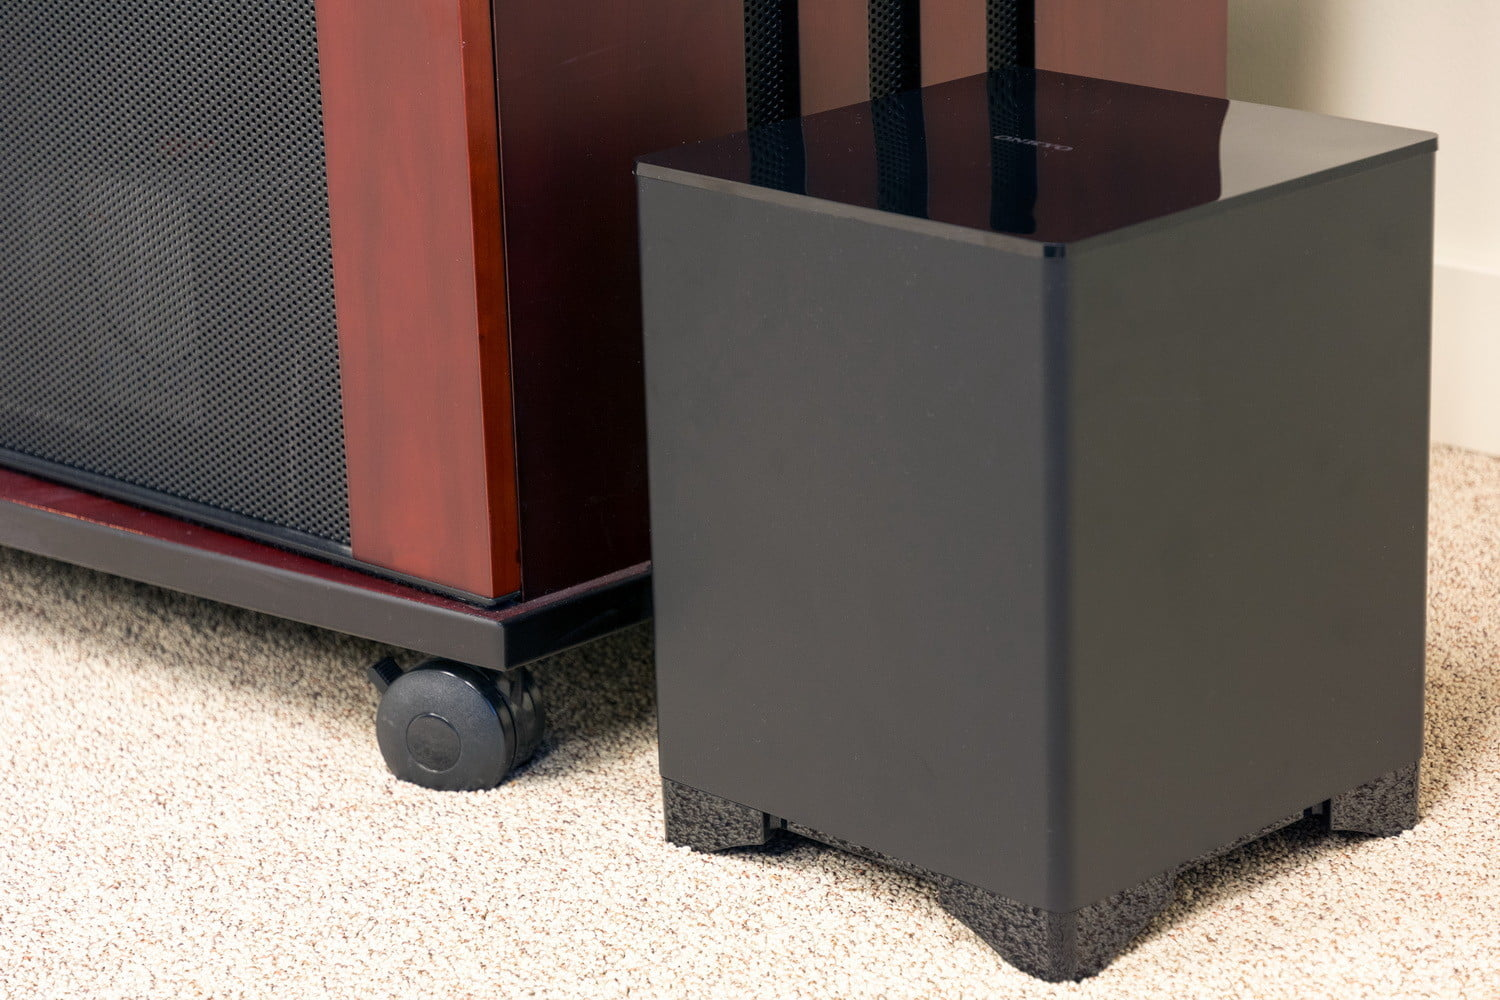 How To Buy a Soundbar: Here's an In-Depth Overview | Digital